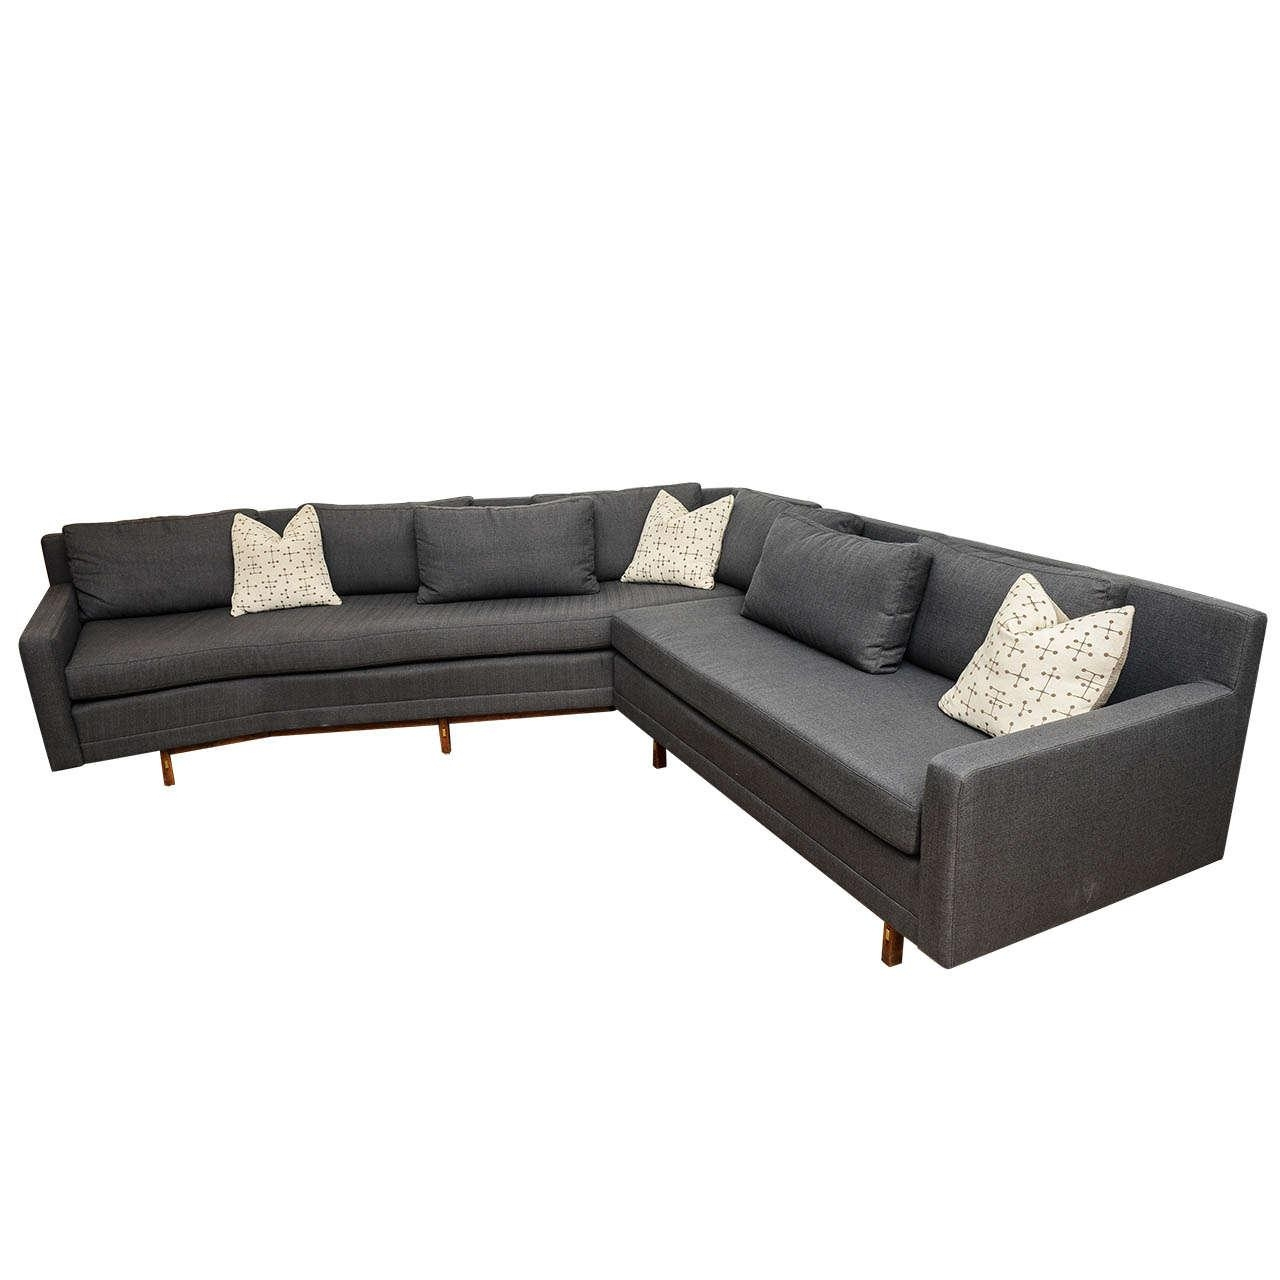 Mid Century Modern Sectional Sofas – Video And Photos Throughout Mid Century Modern Sectional (Image 8 of 20)